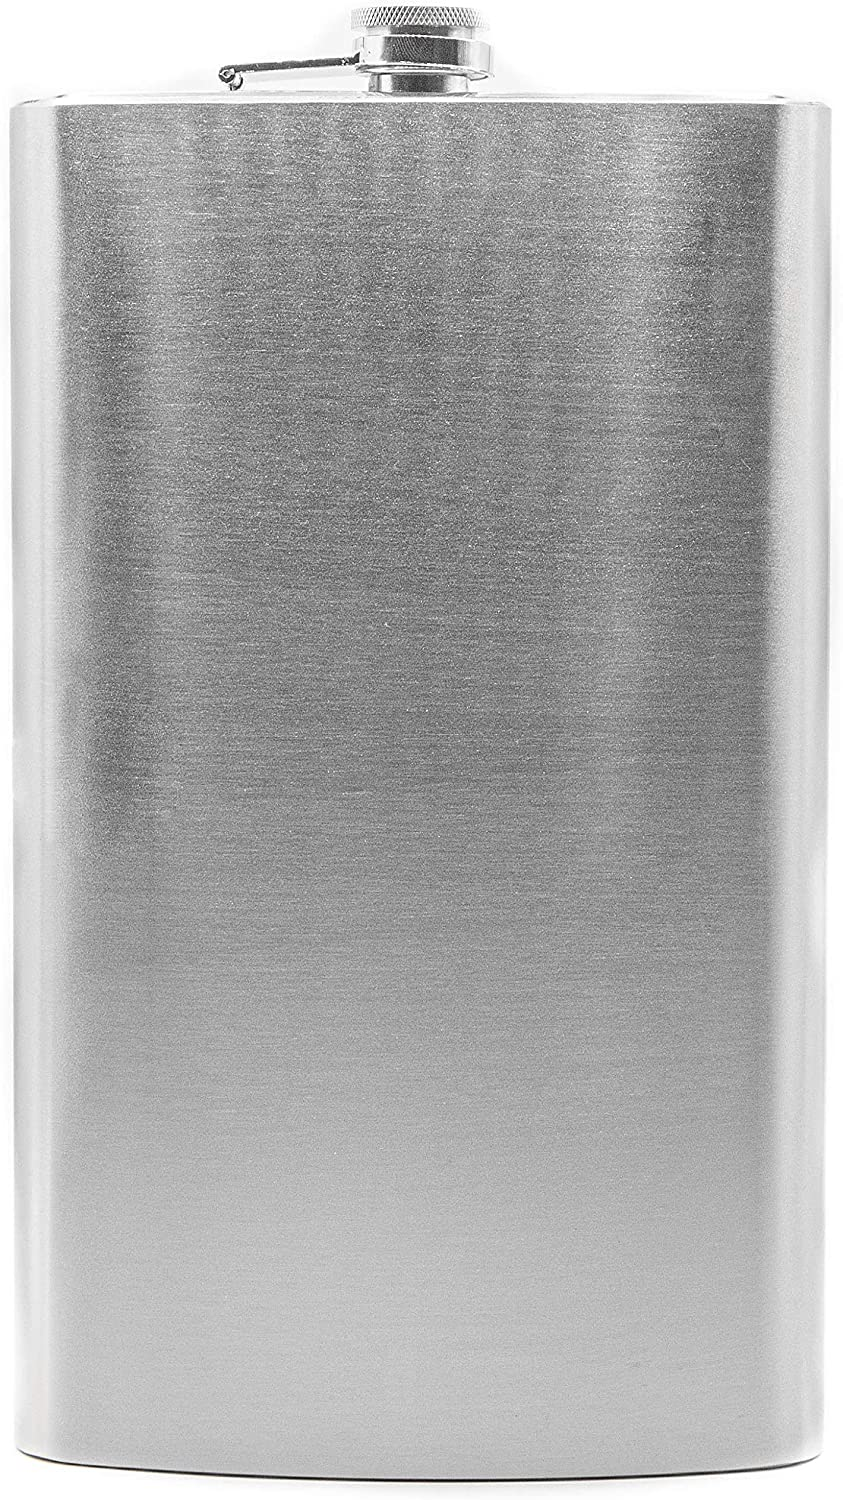 Jumbo 64 Oz Alcohol Liquor Flask Made from 304 (18/8) Food Grade Stainless Steel